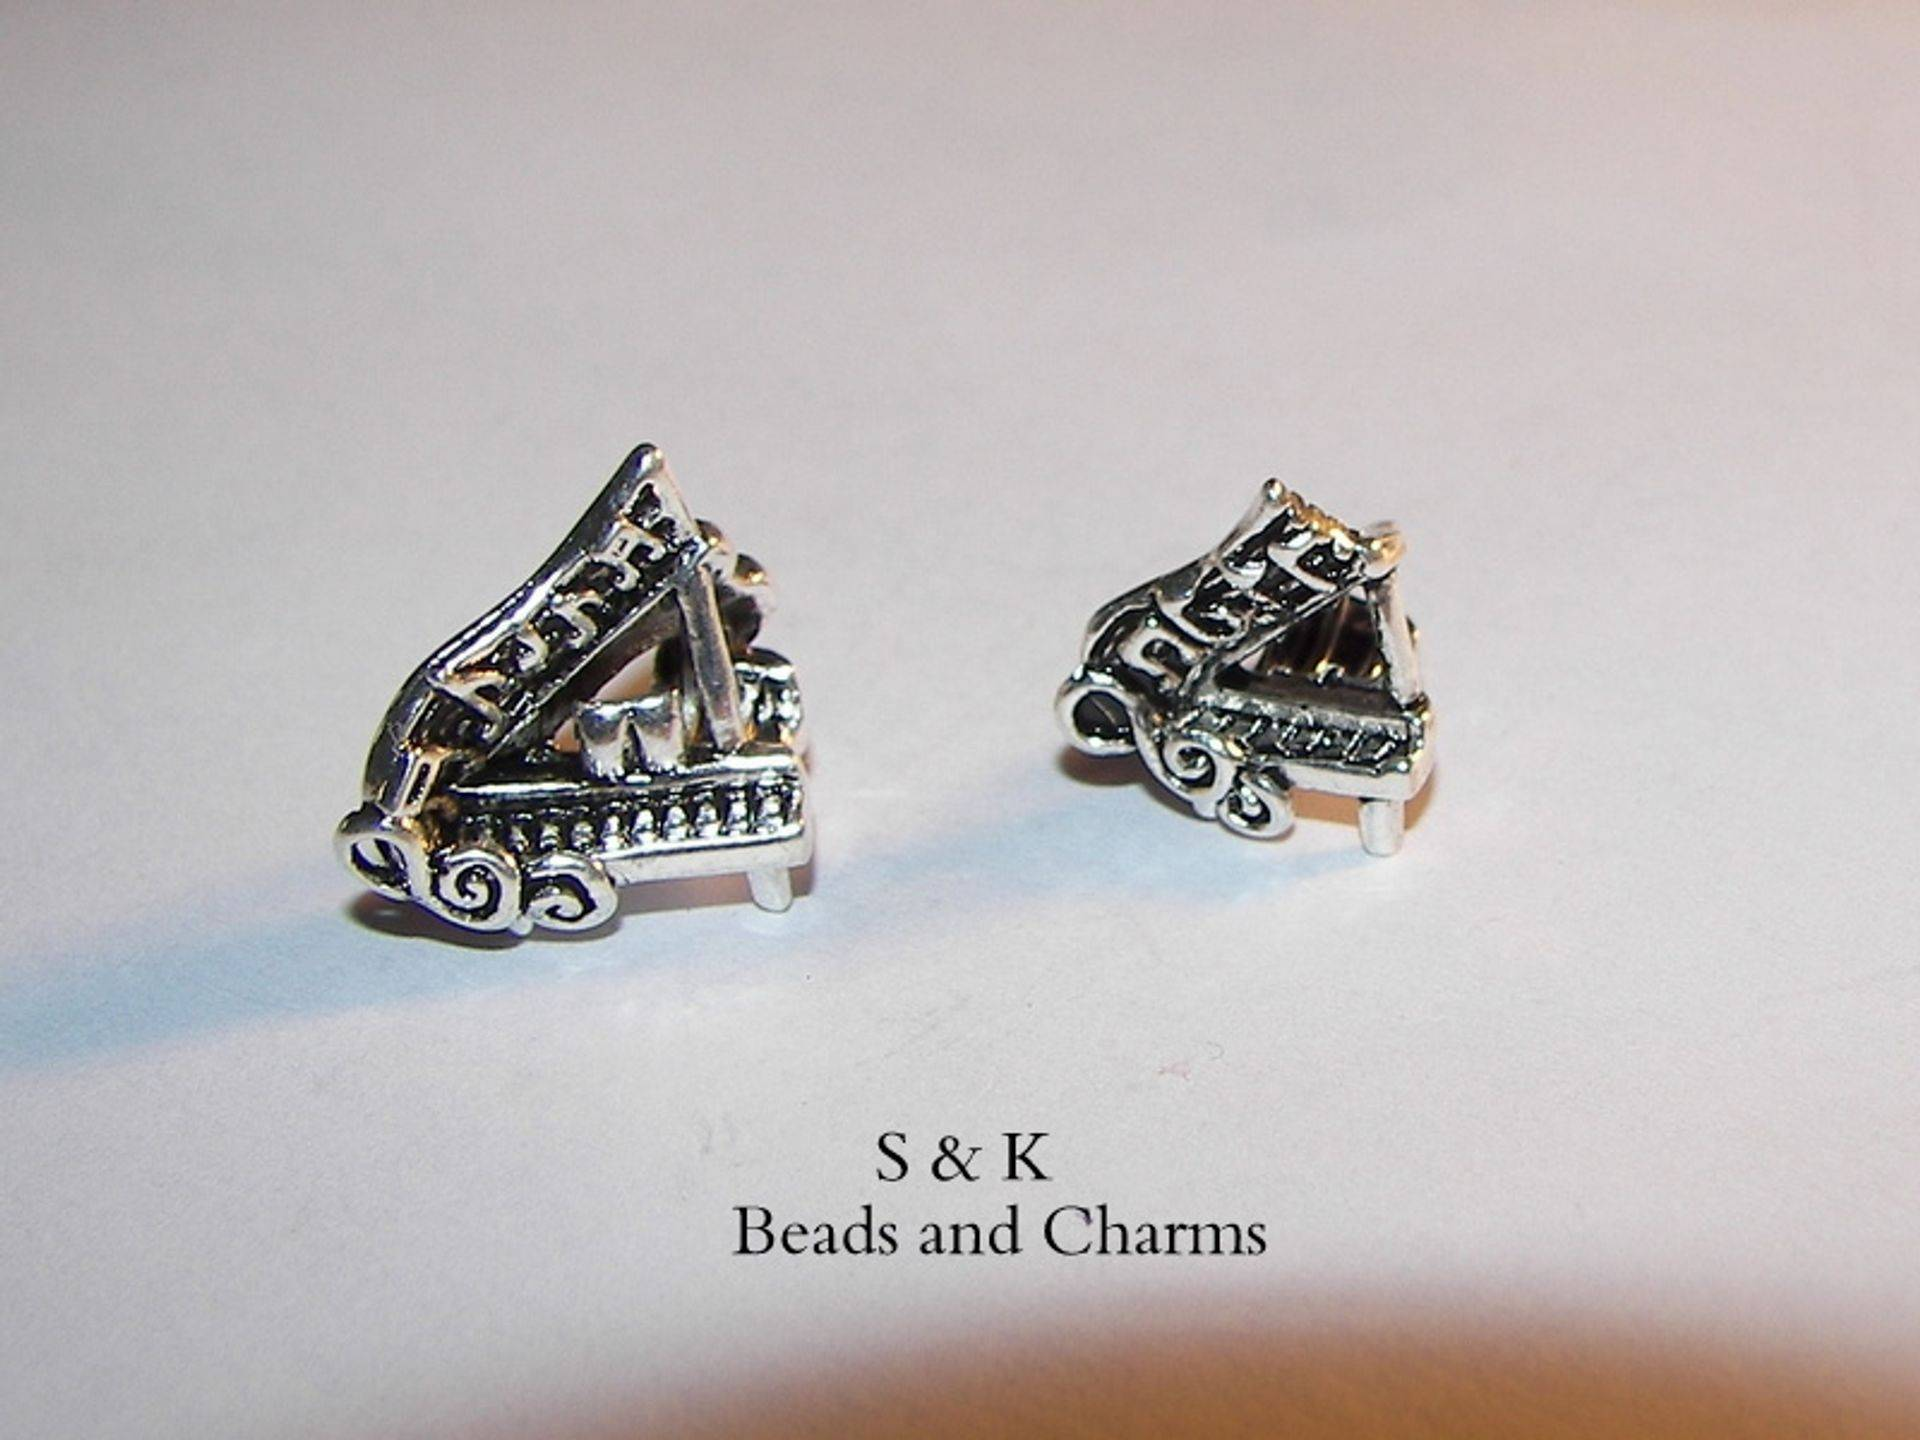 Piano charms to fit pandora  from S&K beads and Charms